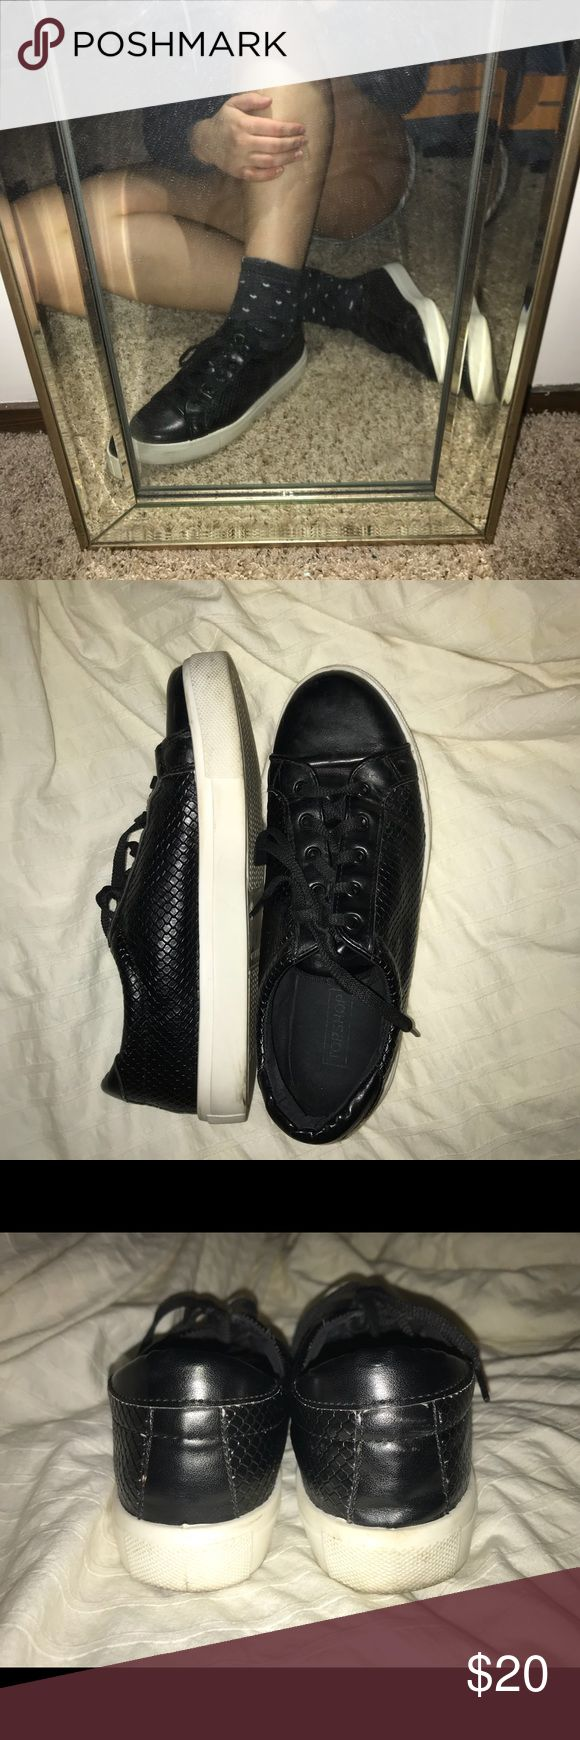 Black Leather Sneakers Black leather sneakers with a textured snake print in the middle. White sole. Topshop Shoes Sneakers